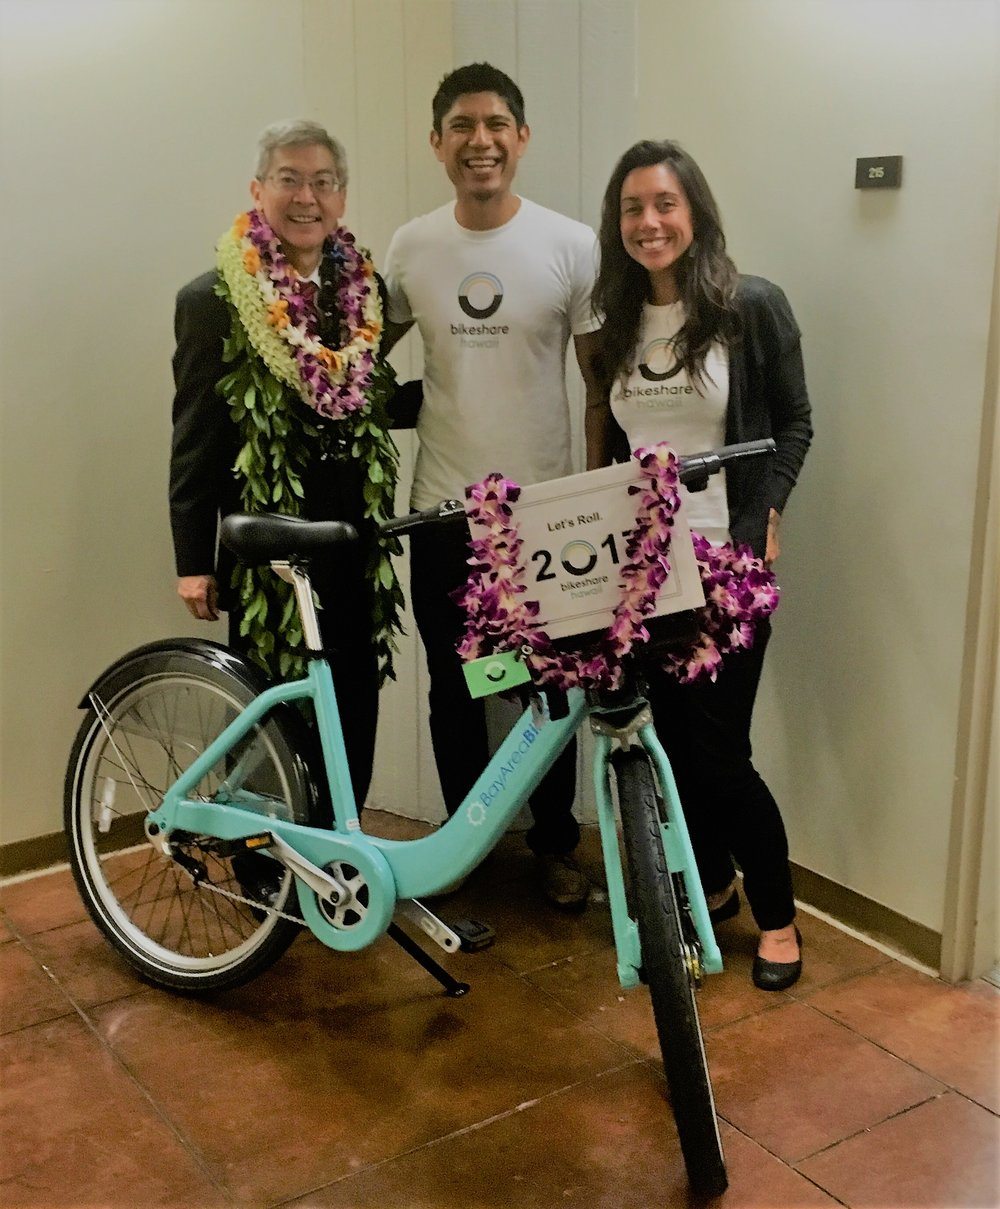 Senator Breene Harimoto of District 16 (longtime supporter of alternative transportation and bikeshare) with Bikeshare Hawaii's Ben Trevino and Justine Espiritu.